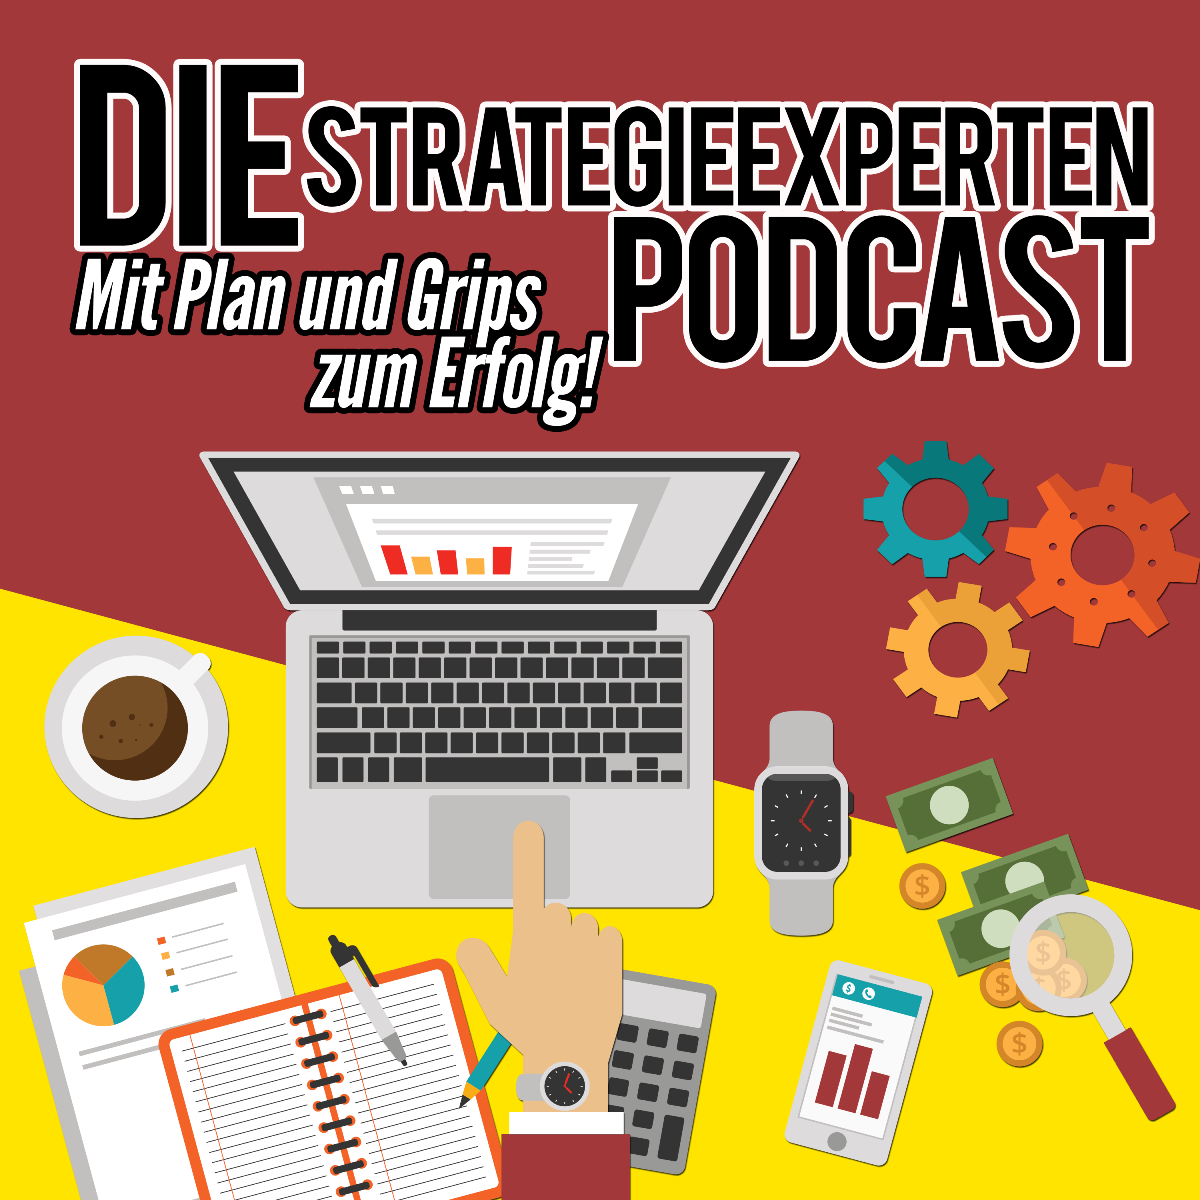 Strategieexperten-Podcast